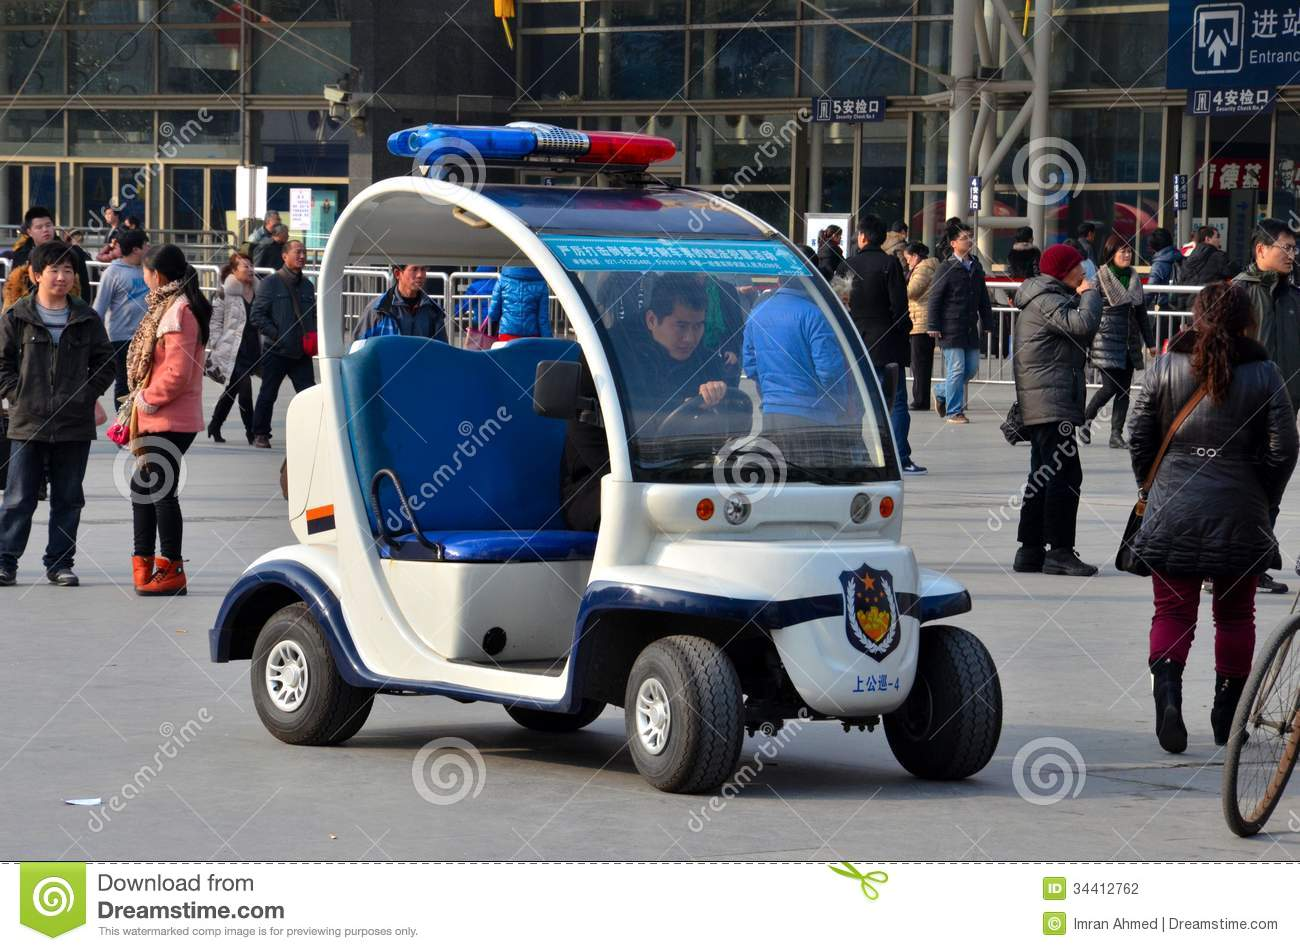 Police Car Web Site >> Shanghai Police Golf Cart Buggy Vehicle Outside Railway Station, China Editorial Photography ...